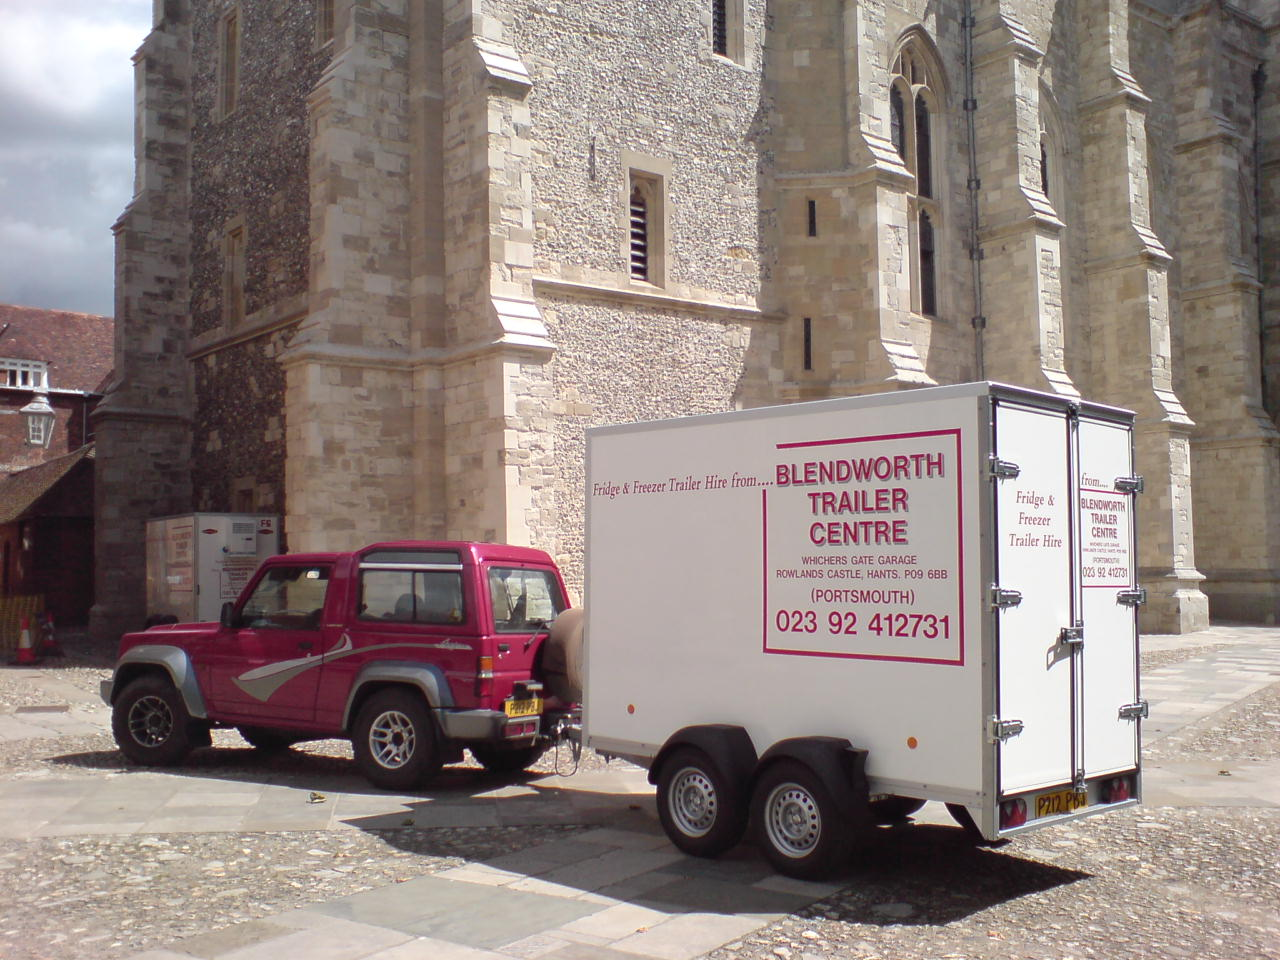 Delivering Fridge Trailer to Winchester College